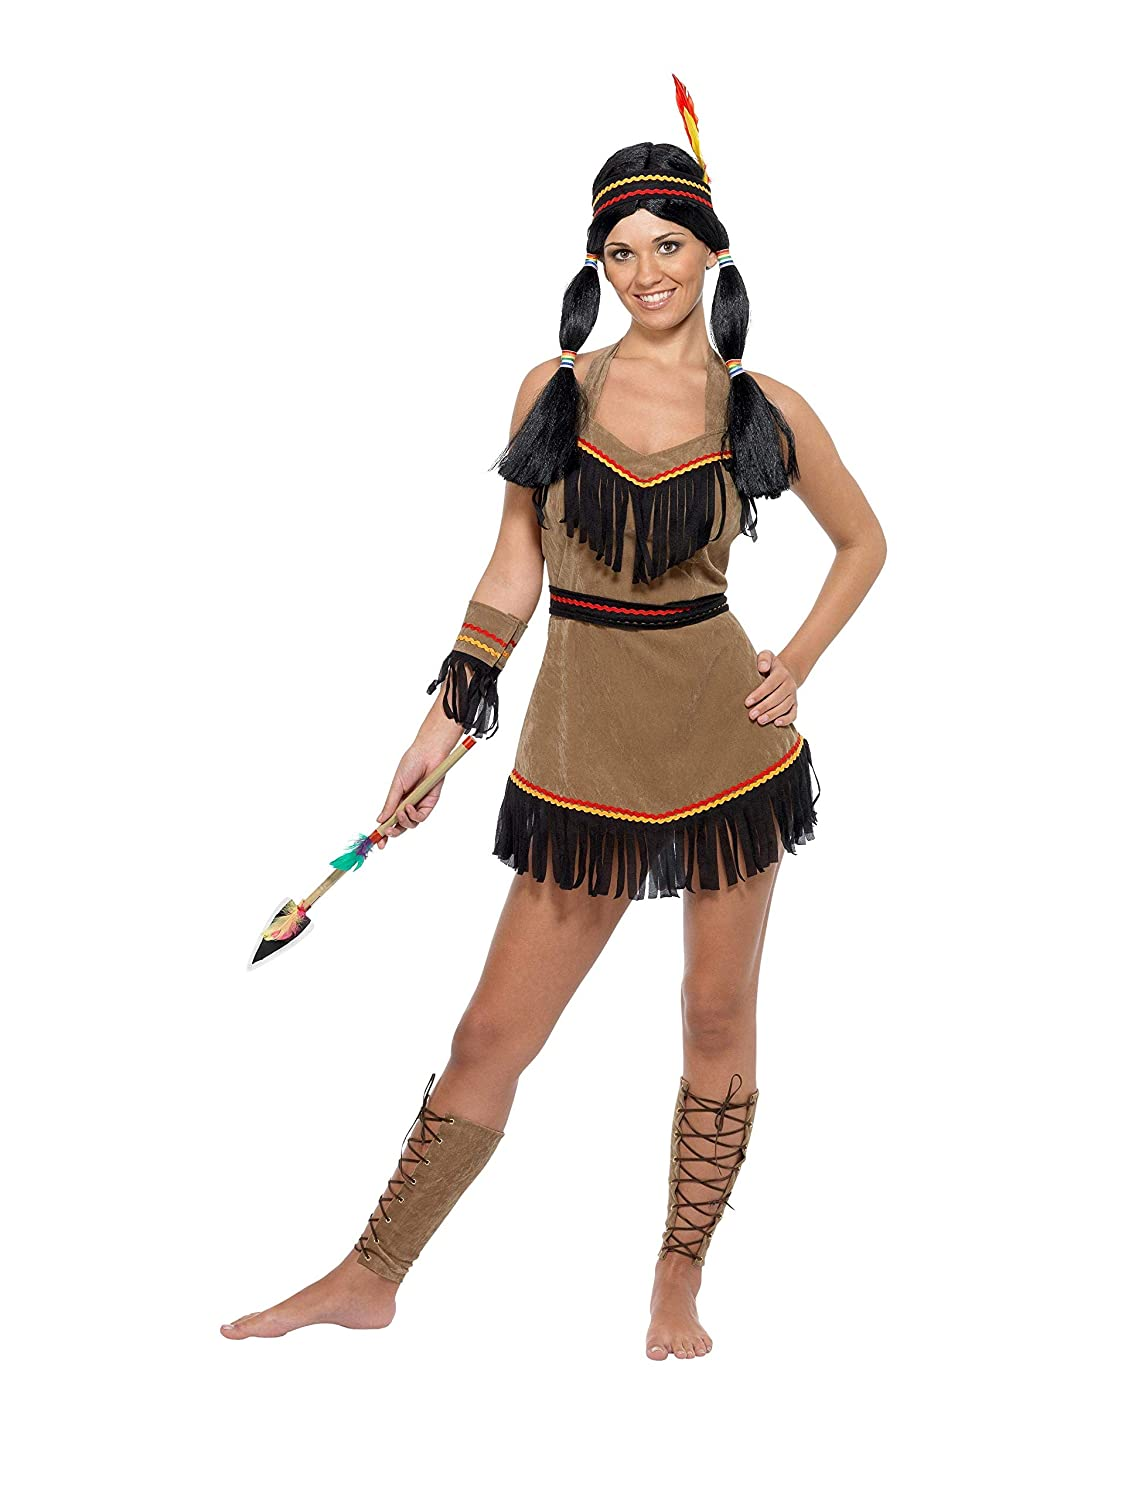 fceee4f22b8 Smiffy's Women's Native American Indian Costume, Dress, Belt, Headband,  Armband and Leg Cuffs, Size: S, Colour: Brown, 31882